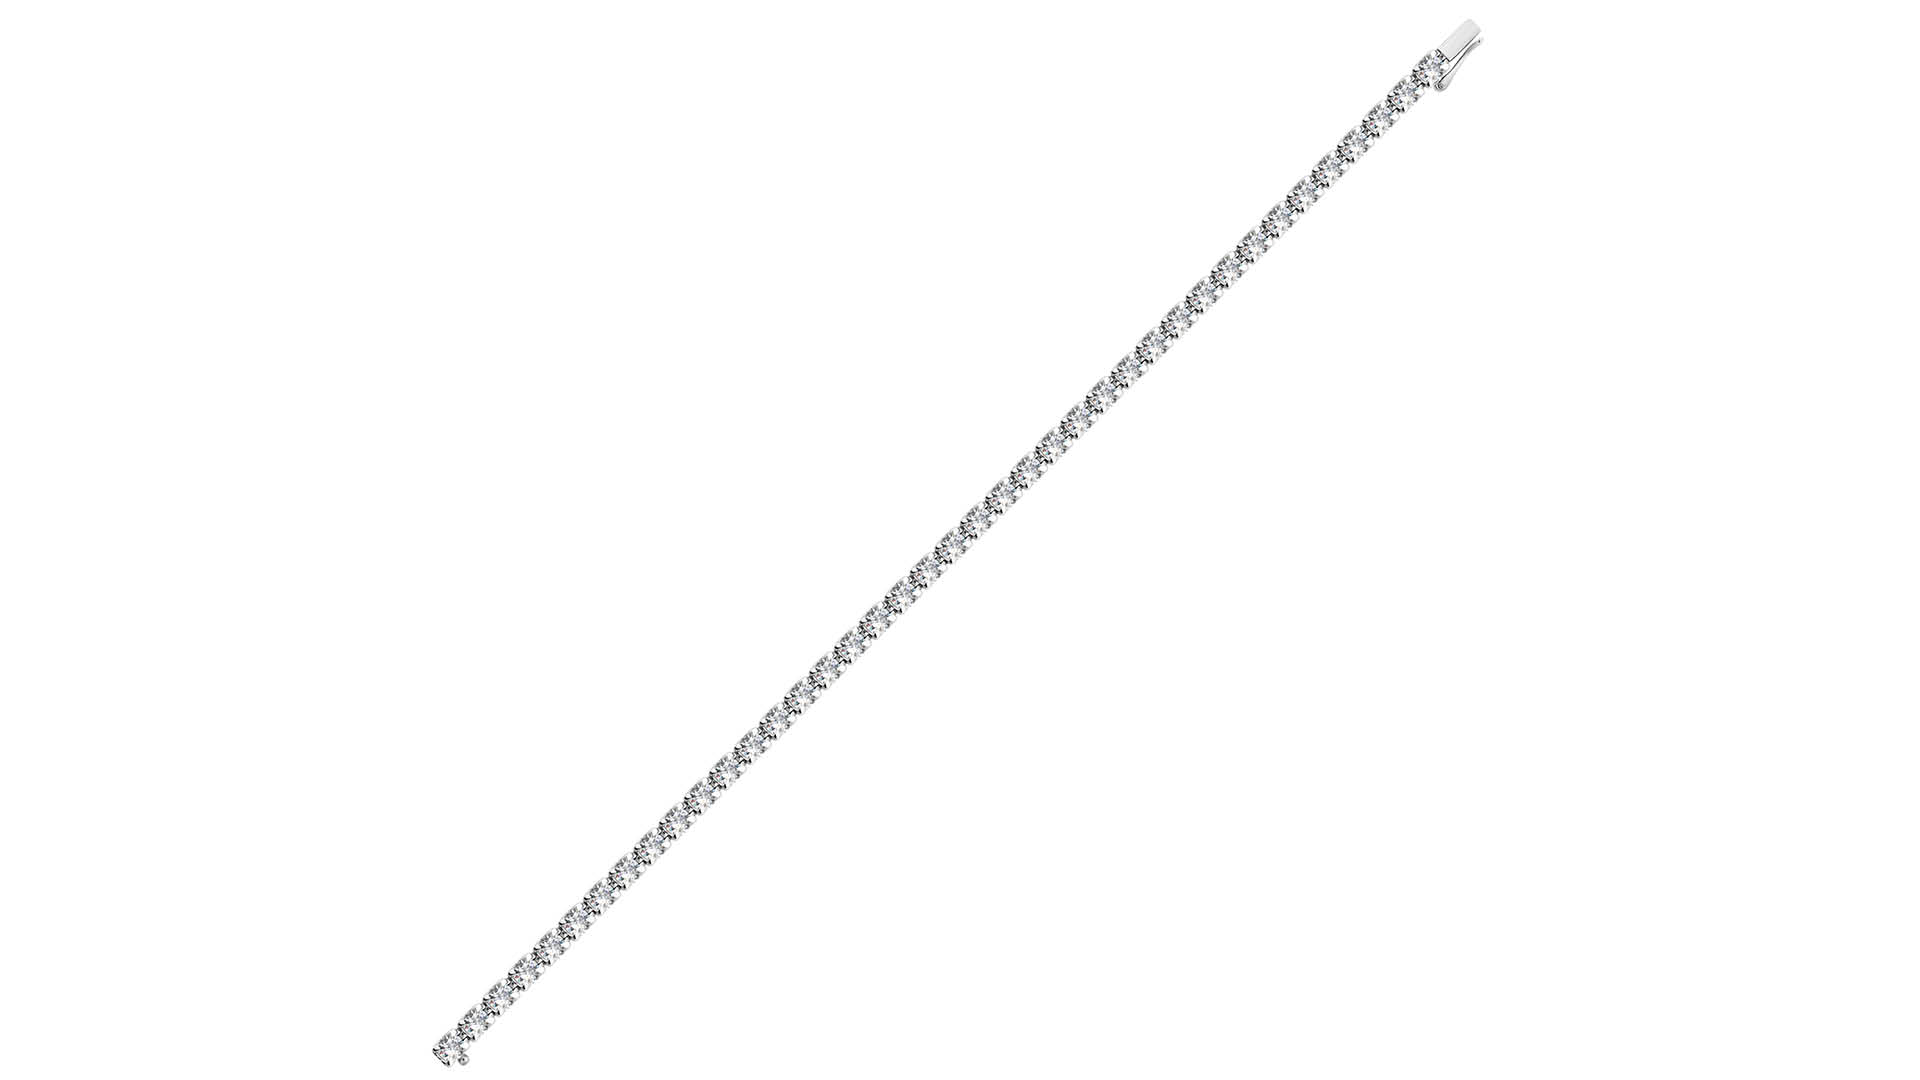 Damas-Tennis-bracelet-with-Forevermark-diamonds